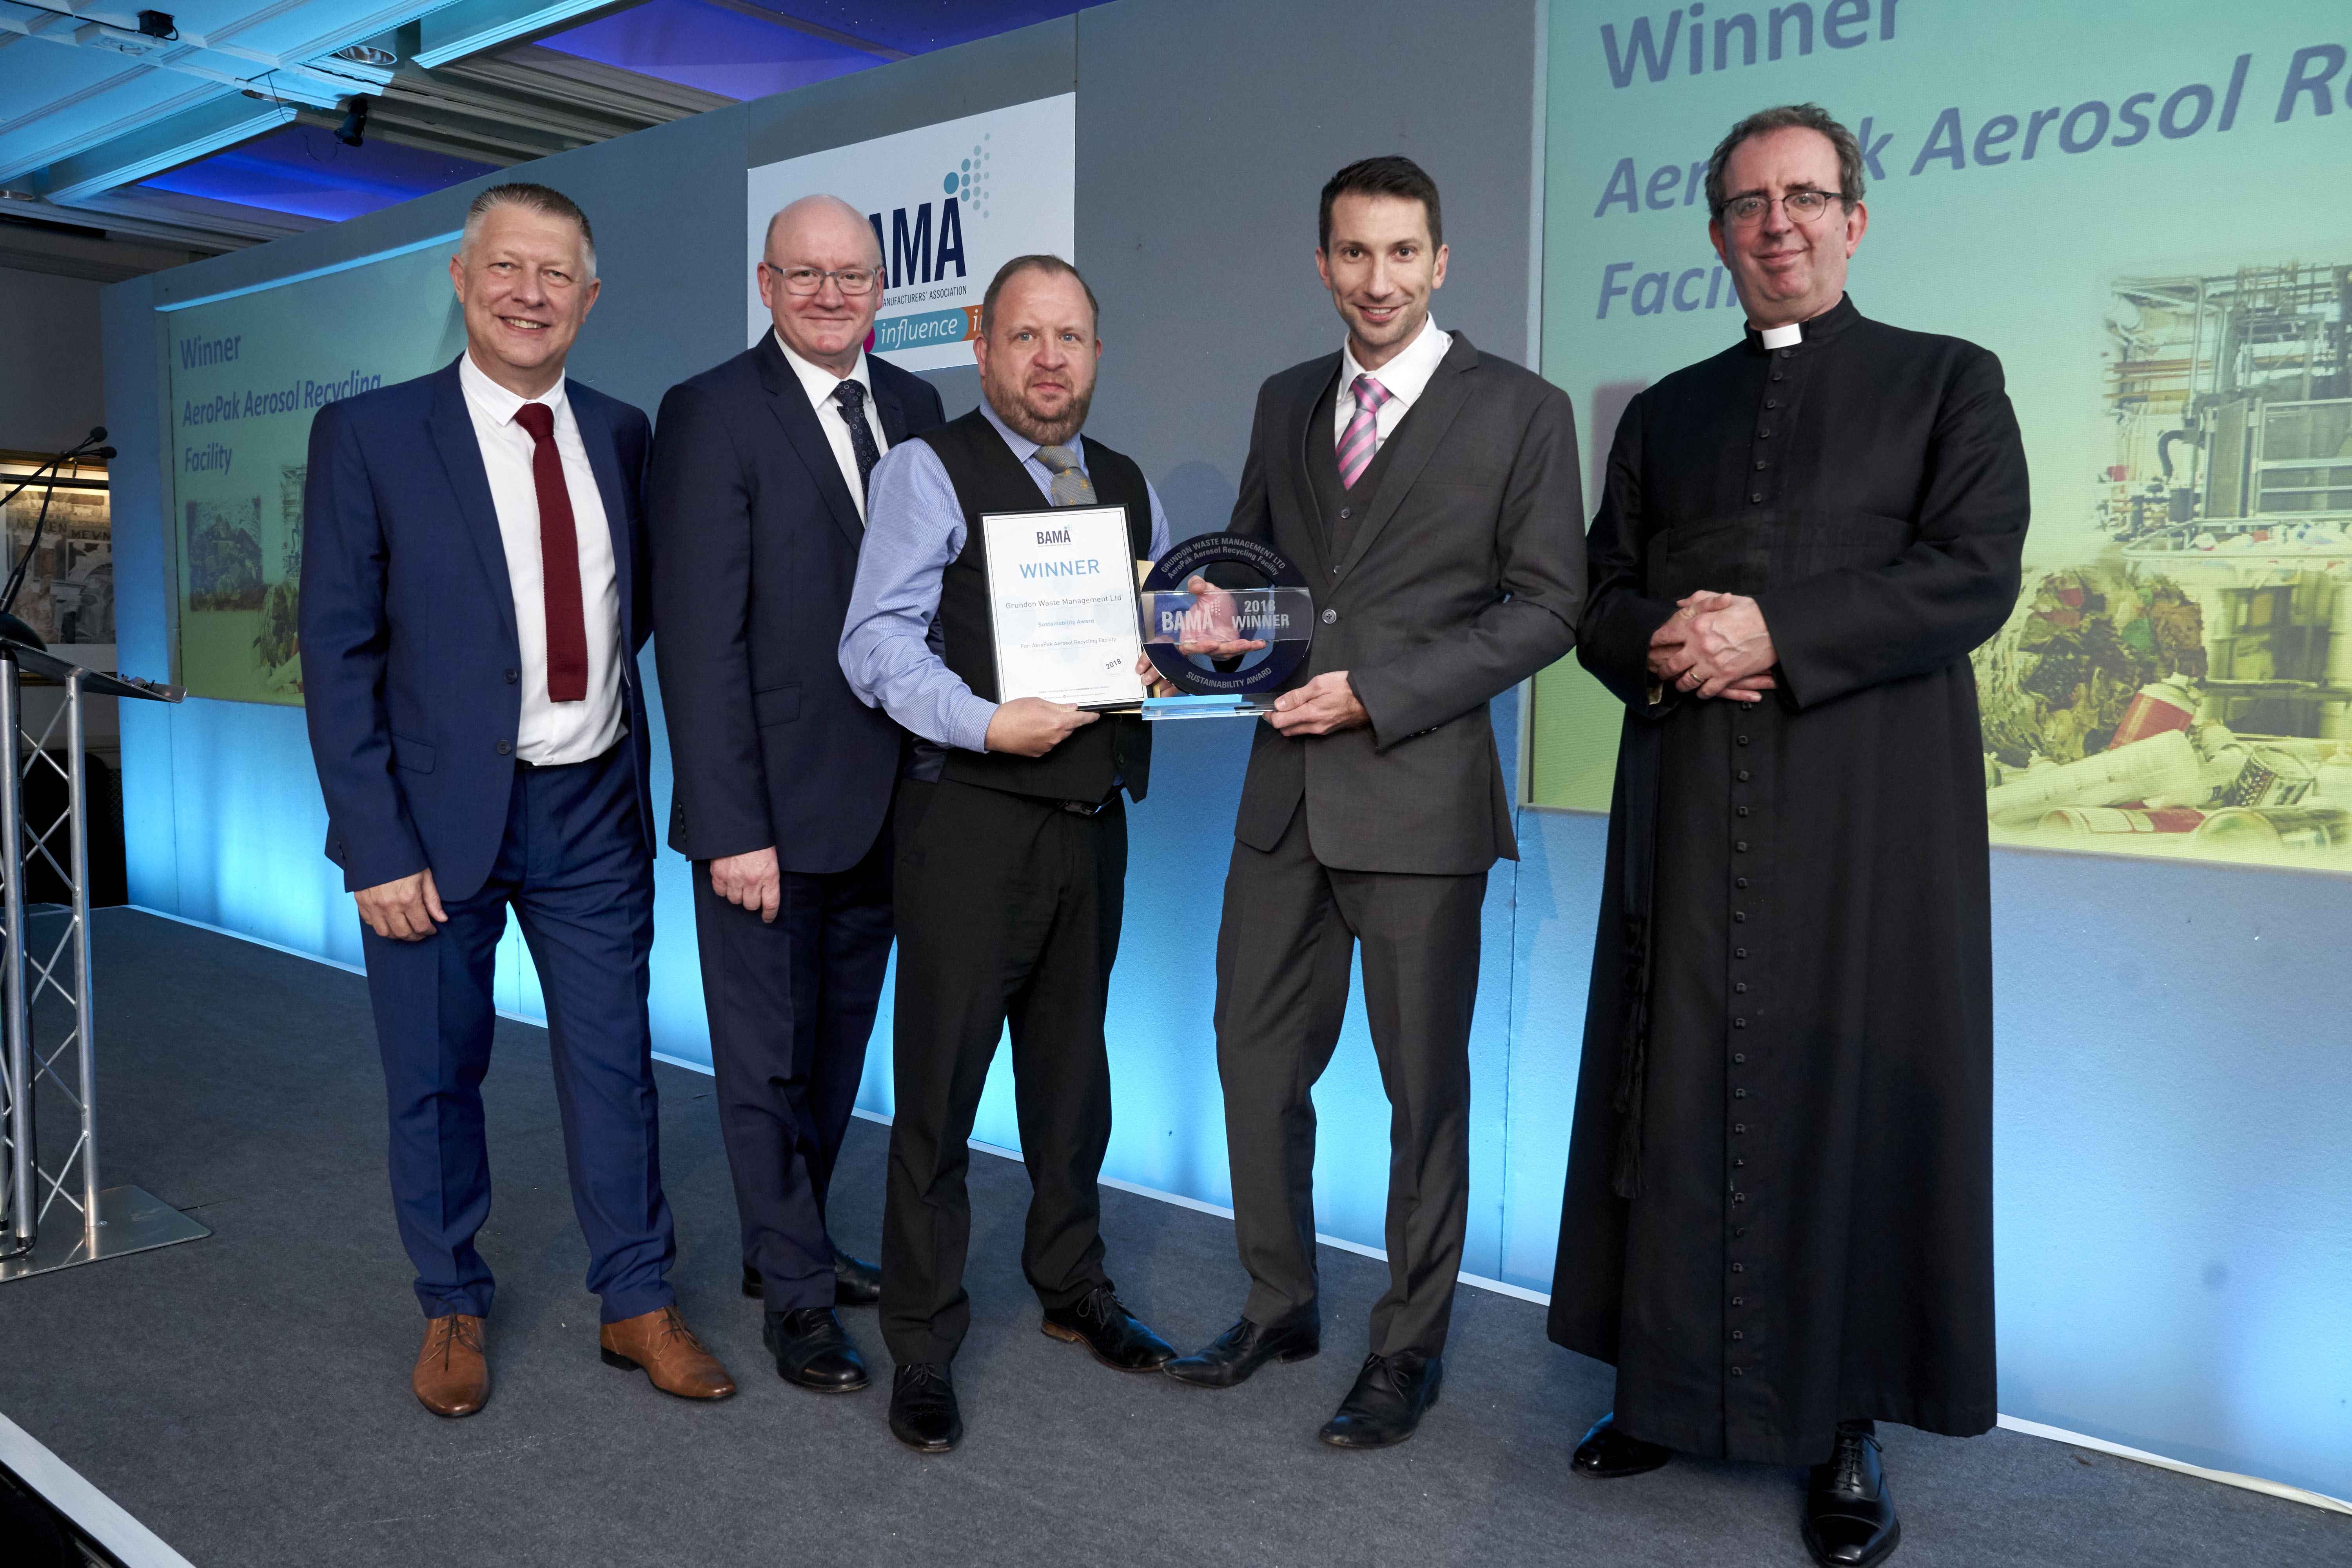 Grundon's Paul McConaghy and Tim Buxton celebrate winning the prestigious BAMA Sustainability Award 2018, which was presented to them by the Reverend Richard Coles.